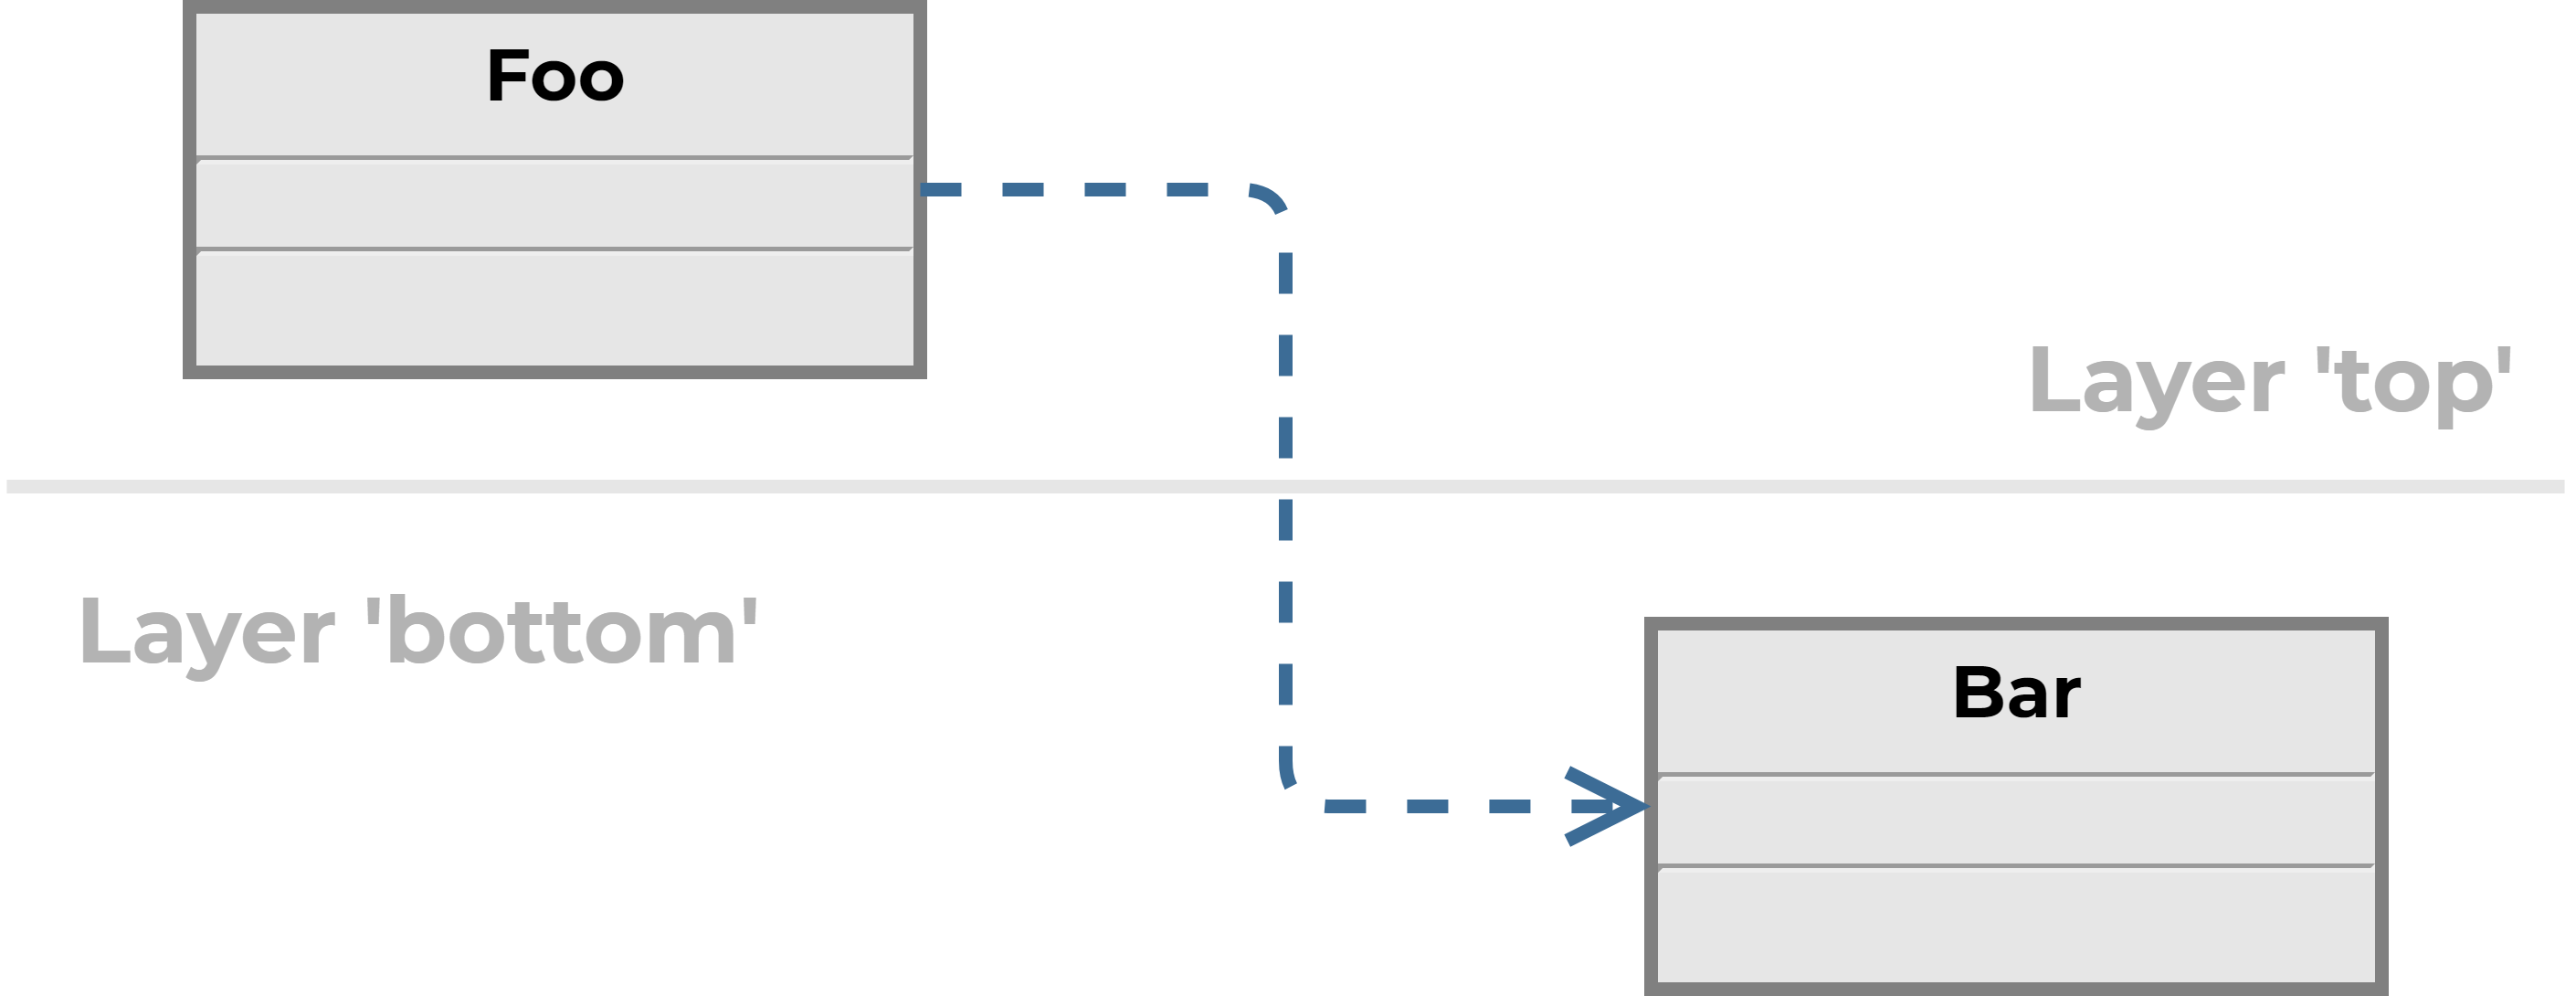 UML class diagram with 2 classes at different layers.